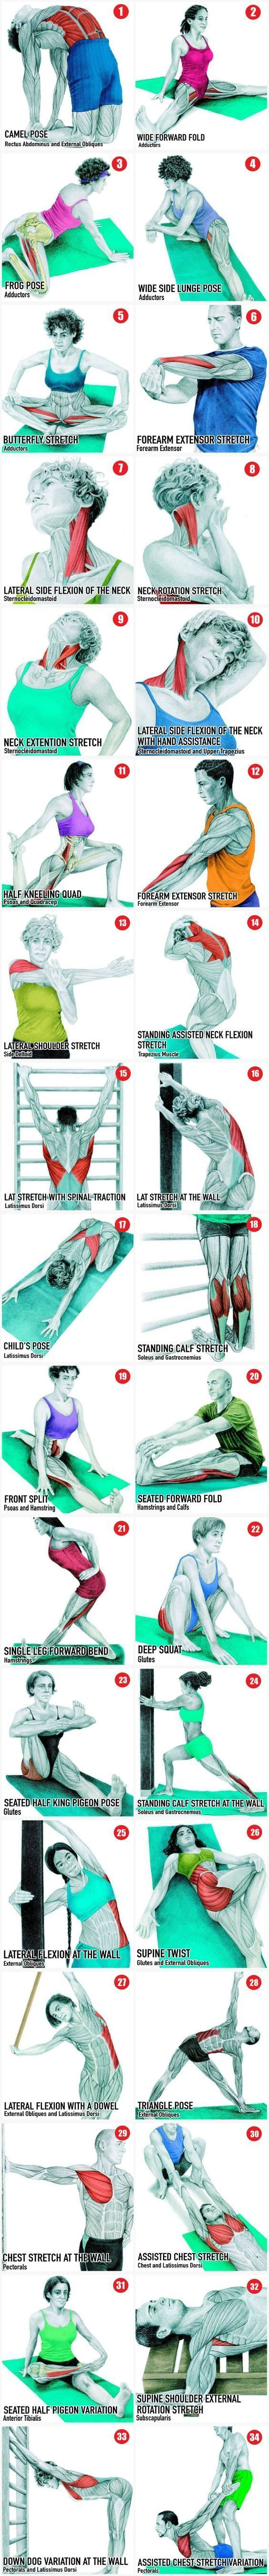 34 Helpful pictures to see which Muscle is being stretched. Repinned by PT Solutions. Follow us at pinterest.com/myptsolutions